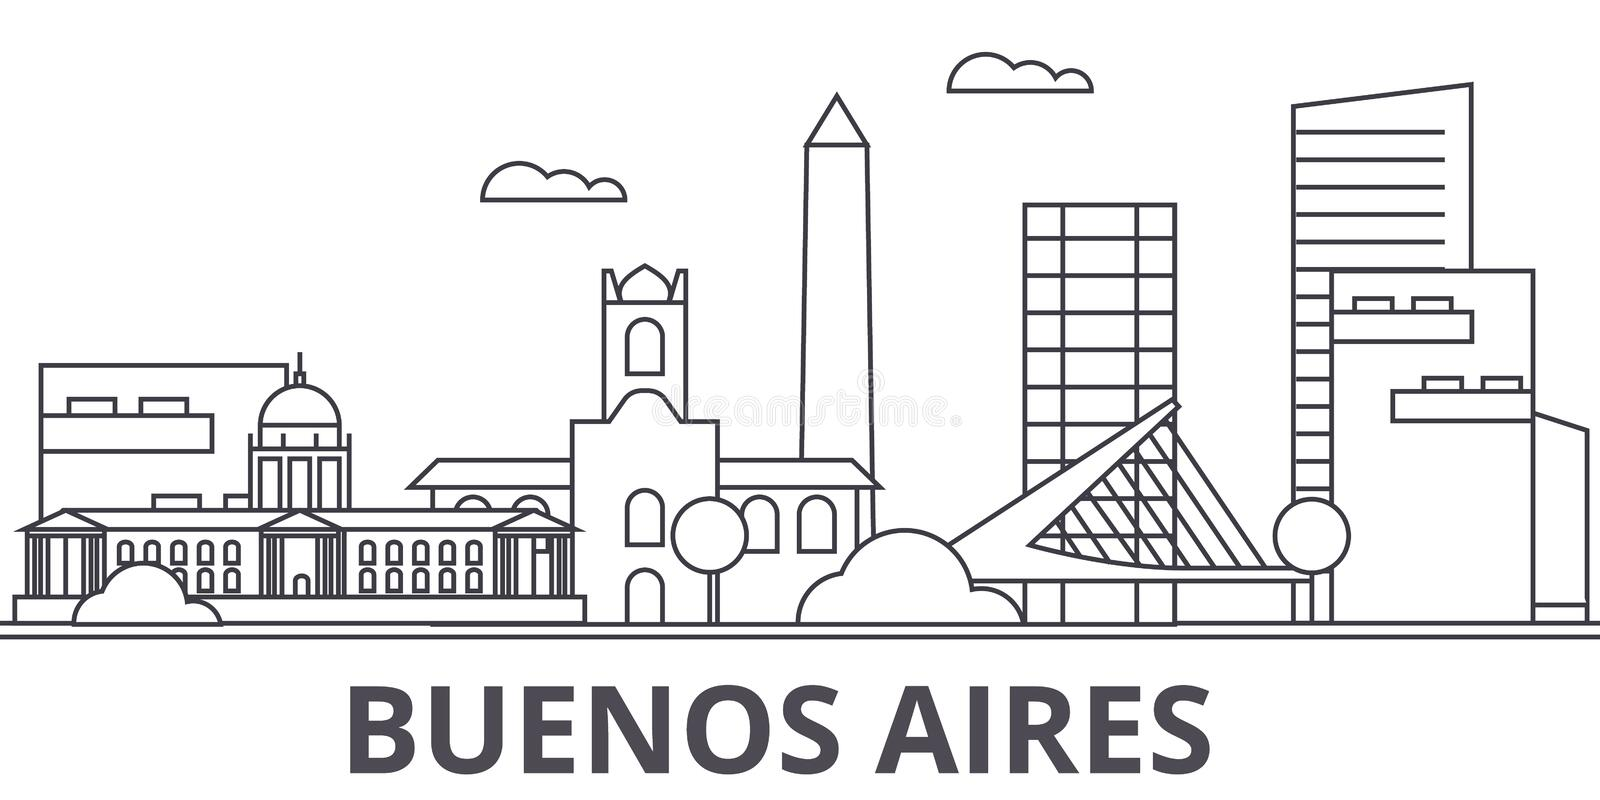 Buenos Airos architecture line skyline illustration. Linear cityscape with famous landmarks, city sights, design icons royalty free illustration